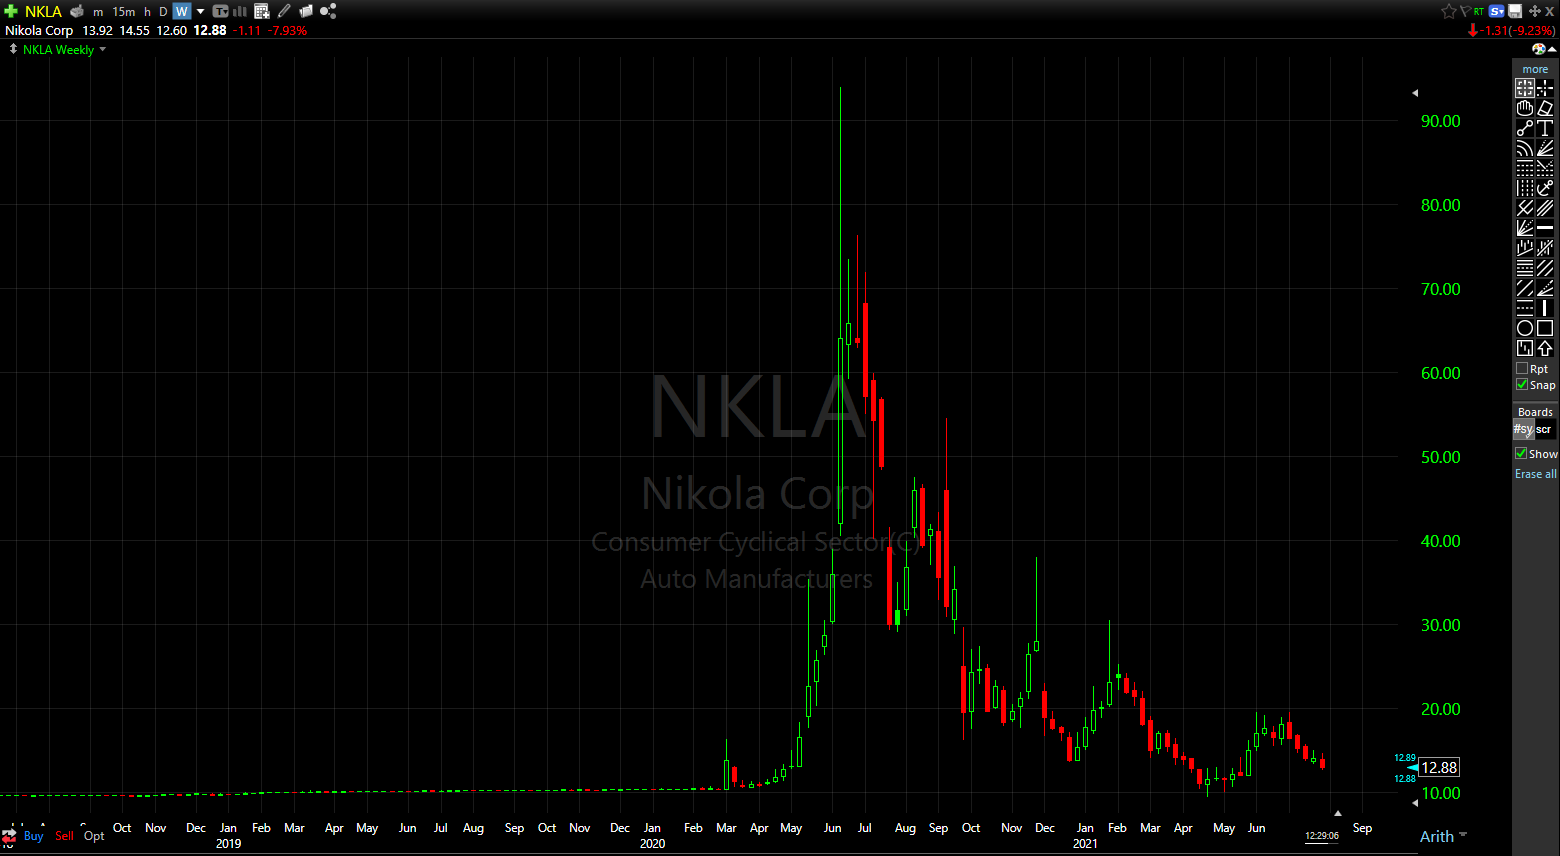 Nikola (NKLA) shares are down 86% since hitting their all-time high in June 2020 as shown here on this weekly chart.